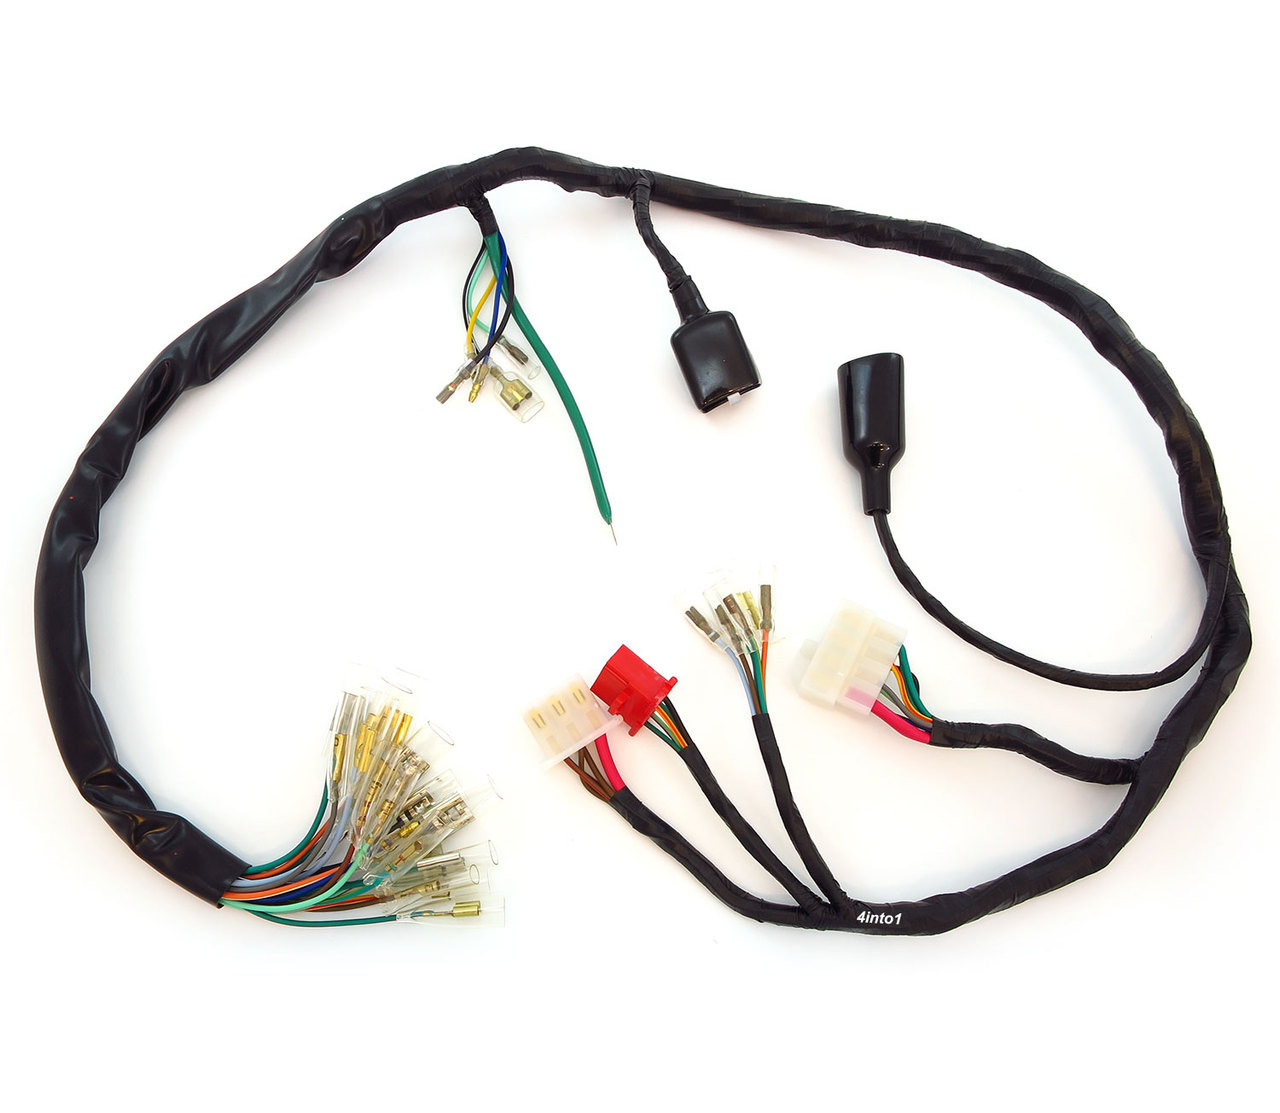 hight resolution of  honda ct90 wiring harness wiring diagram on honda ct90 parts diagram honda ct90 cylinder